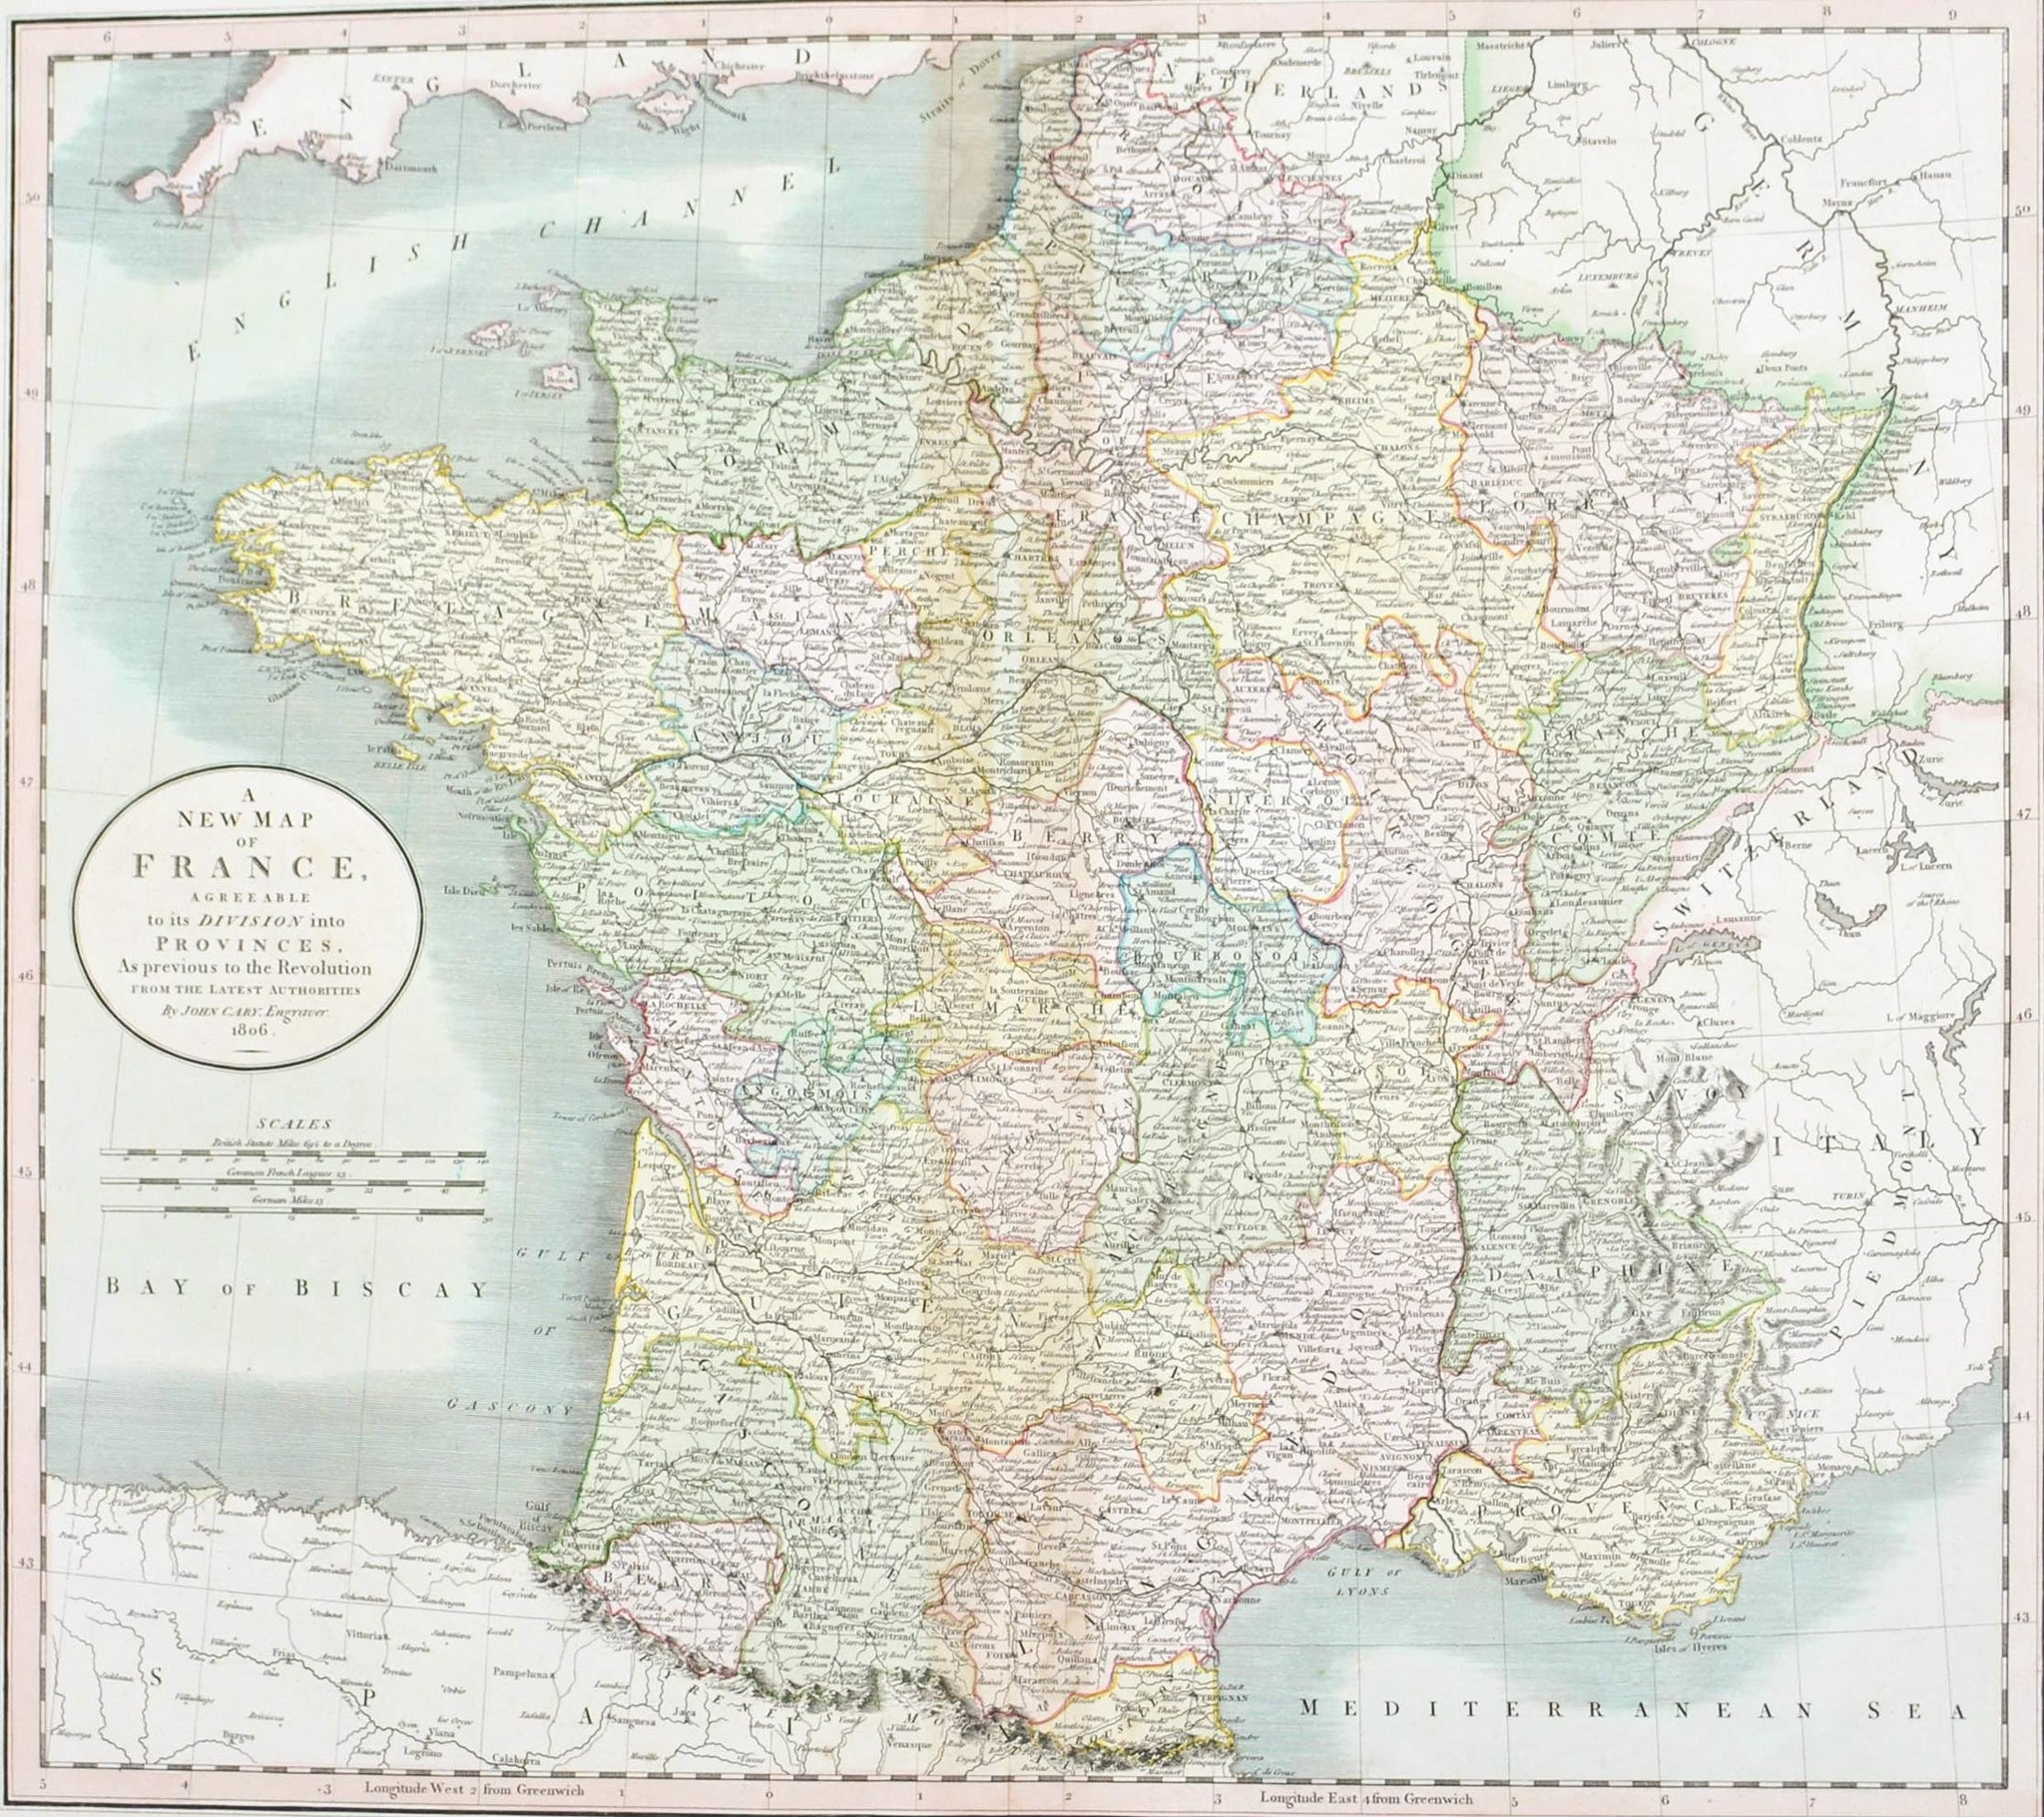 1808 a new map of france cary historic accents 1808 a new map of france cary gumiabroncs Image collections